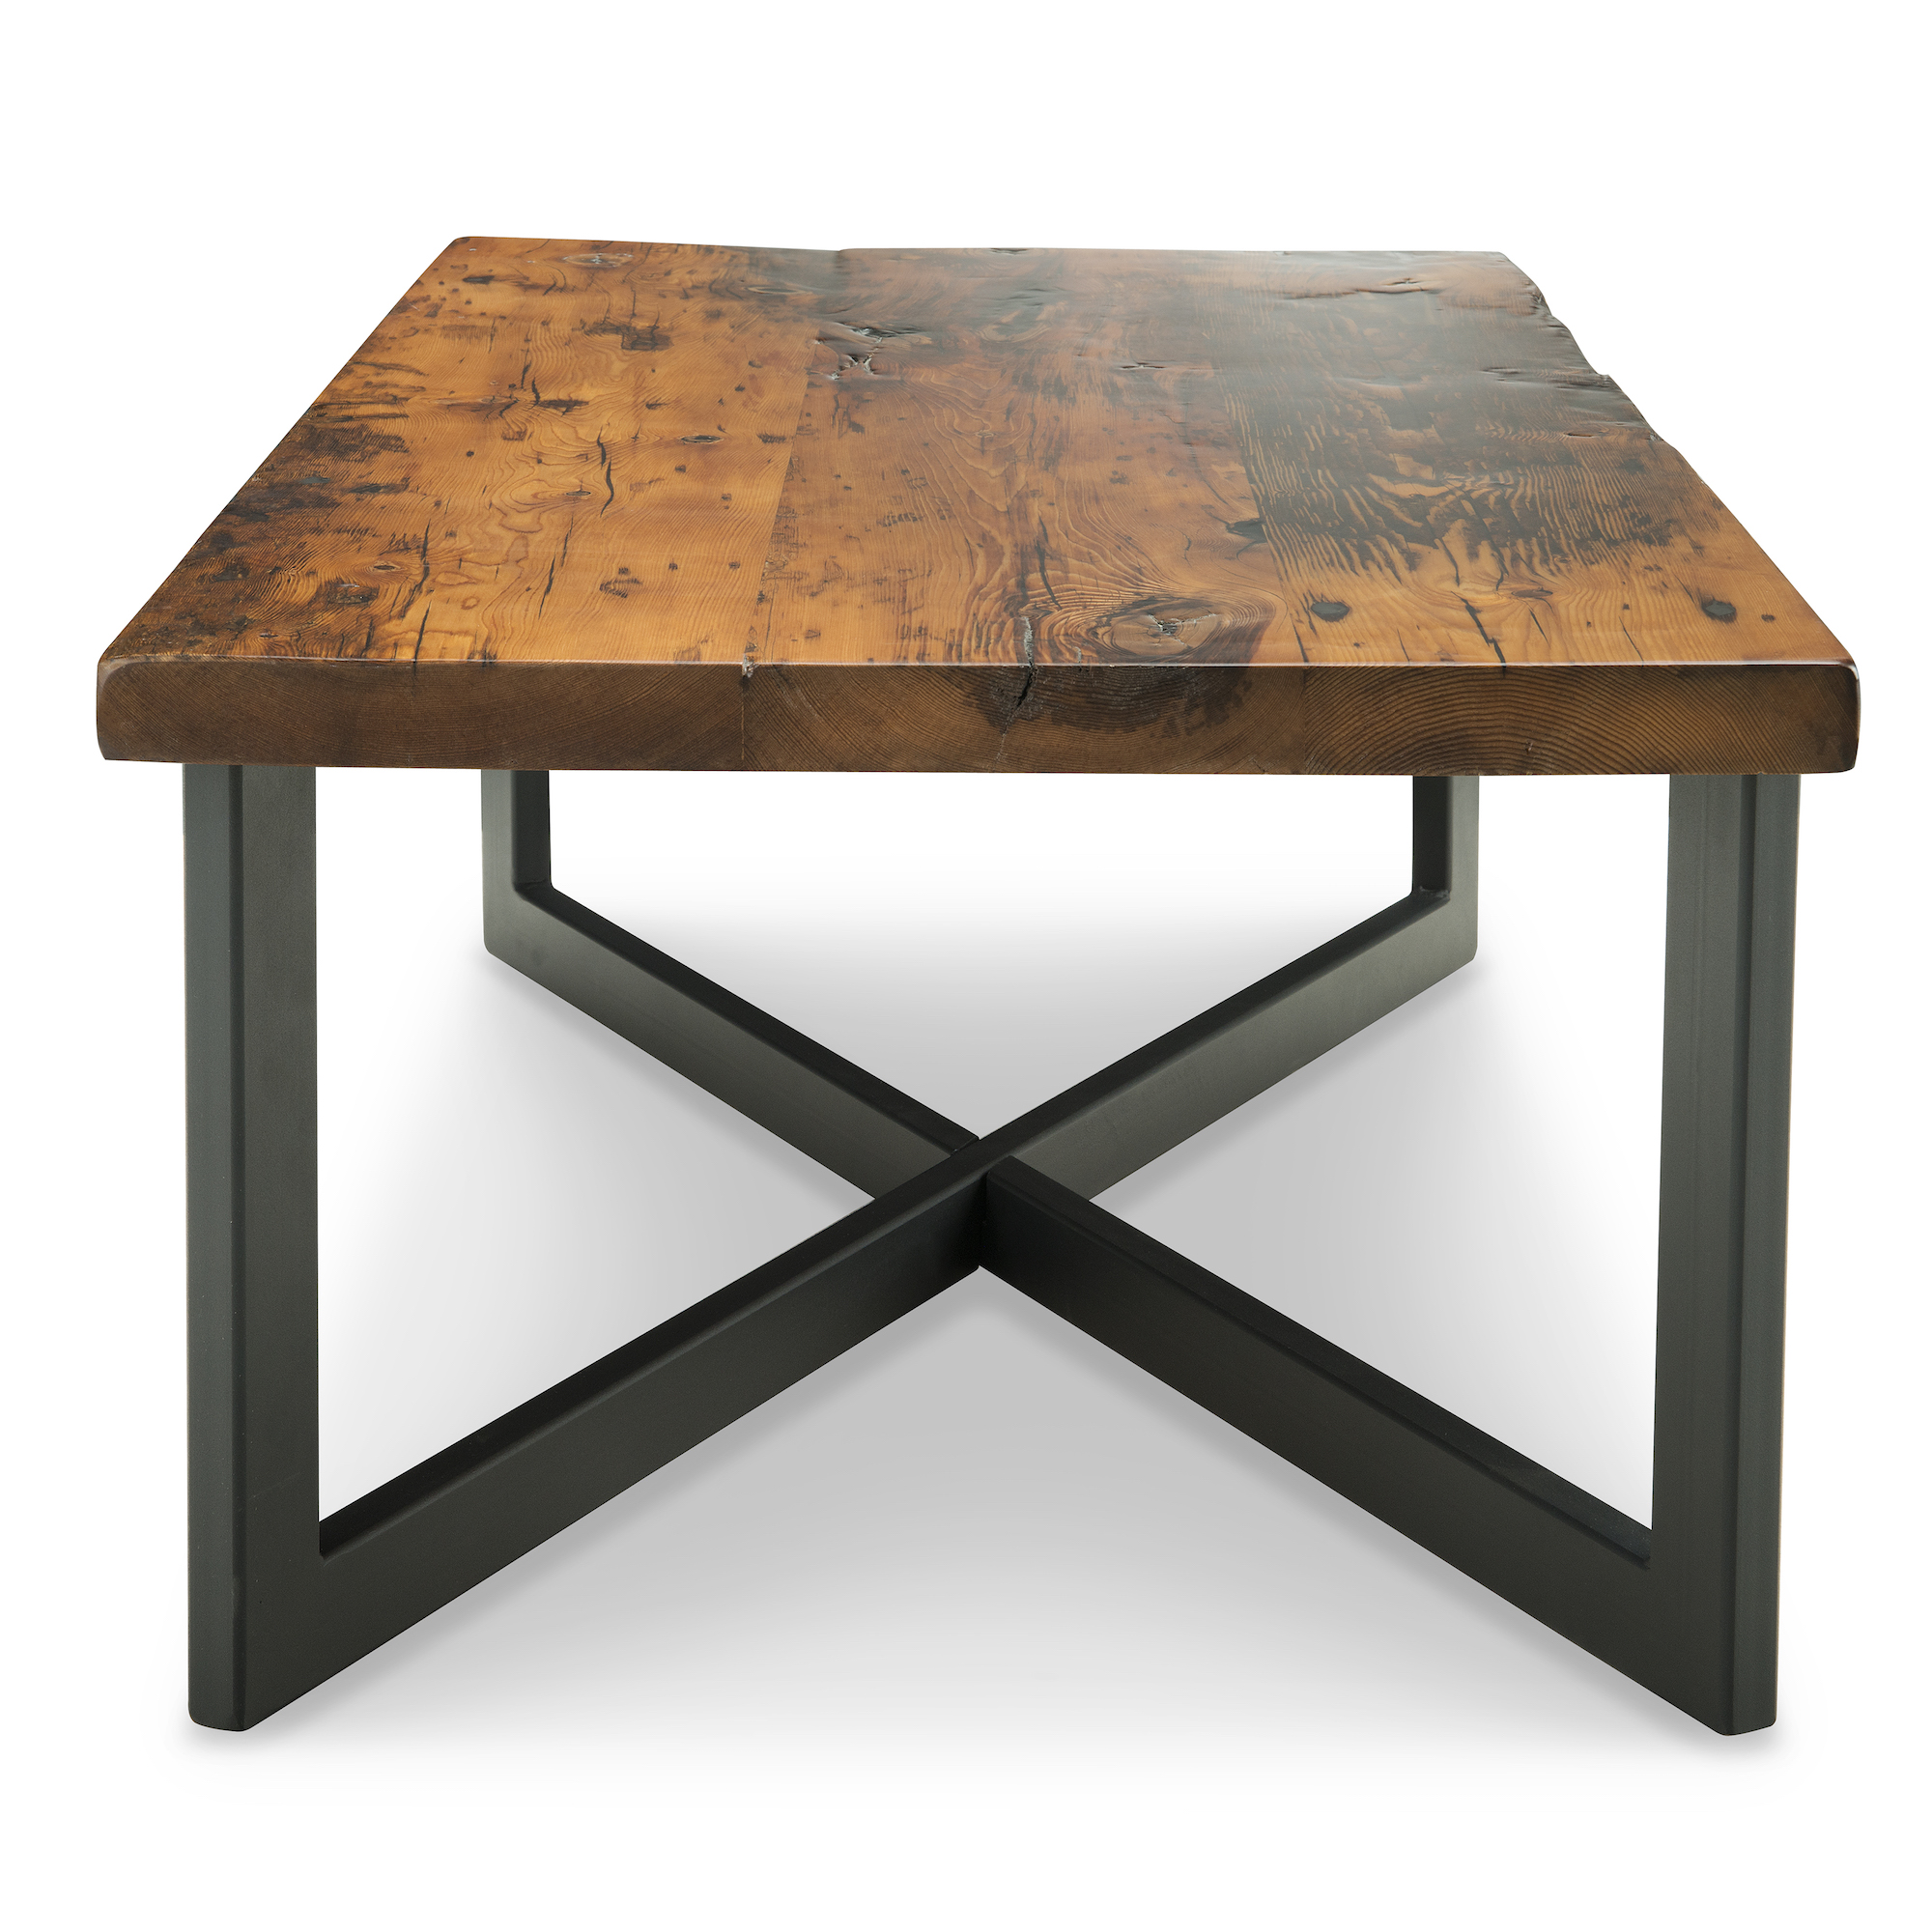 Reclaimed Wood Coffee Table Fresh On Image of Impressive